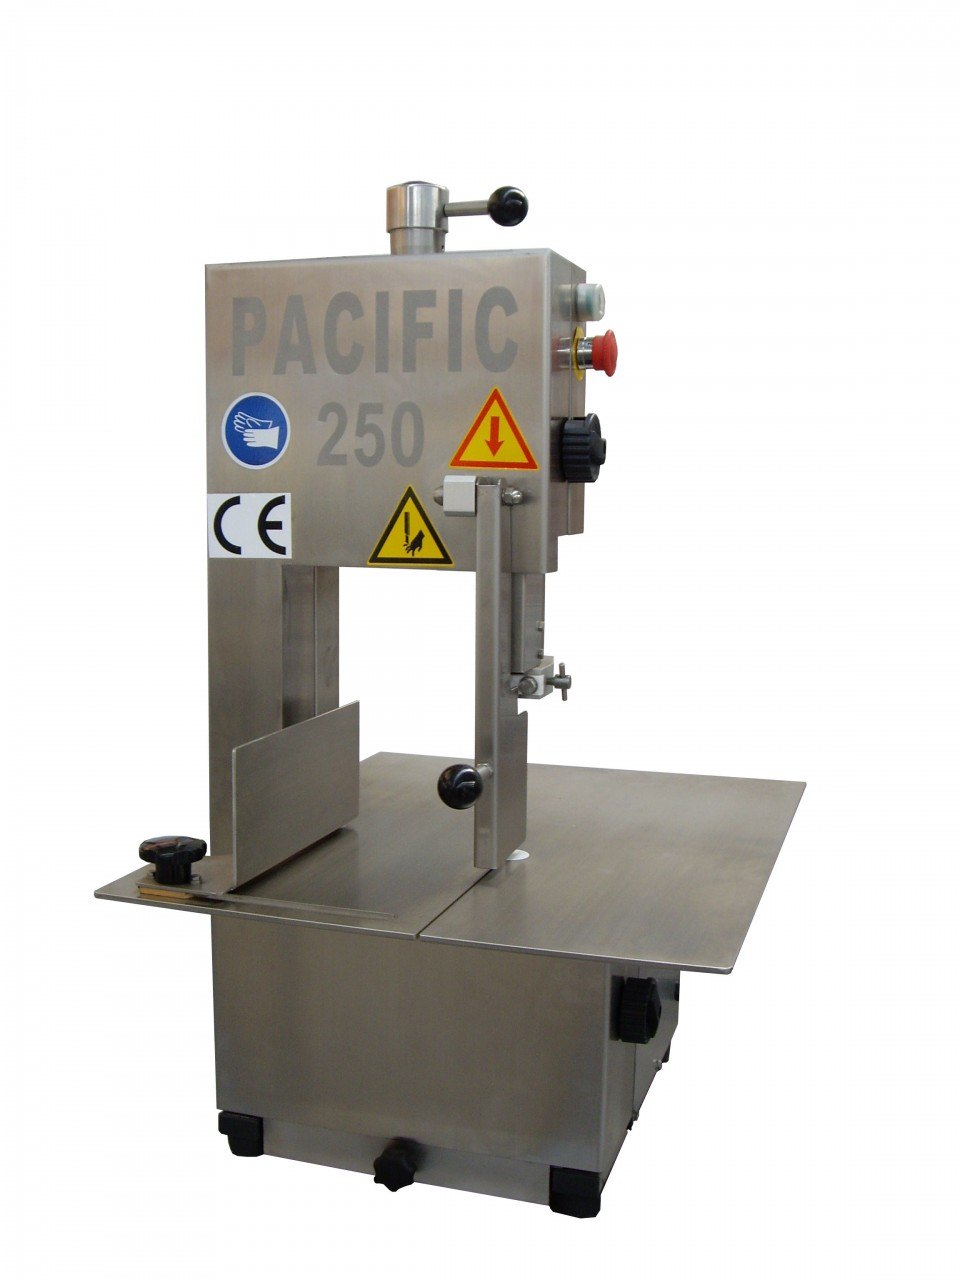 Pacific Y250 Stainless Steel Table Bench Top Bandsaw Pacific Food Machinery